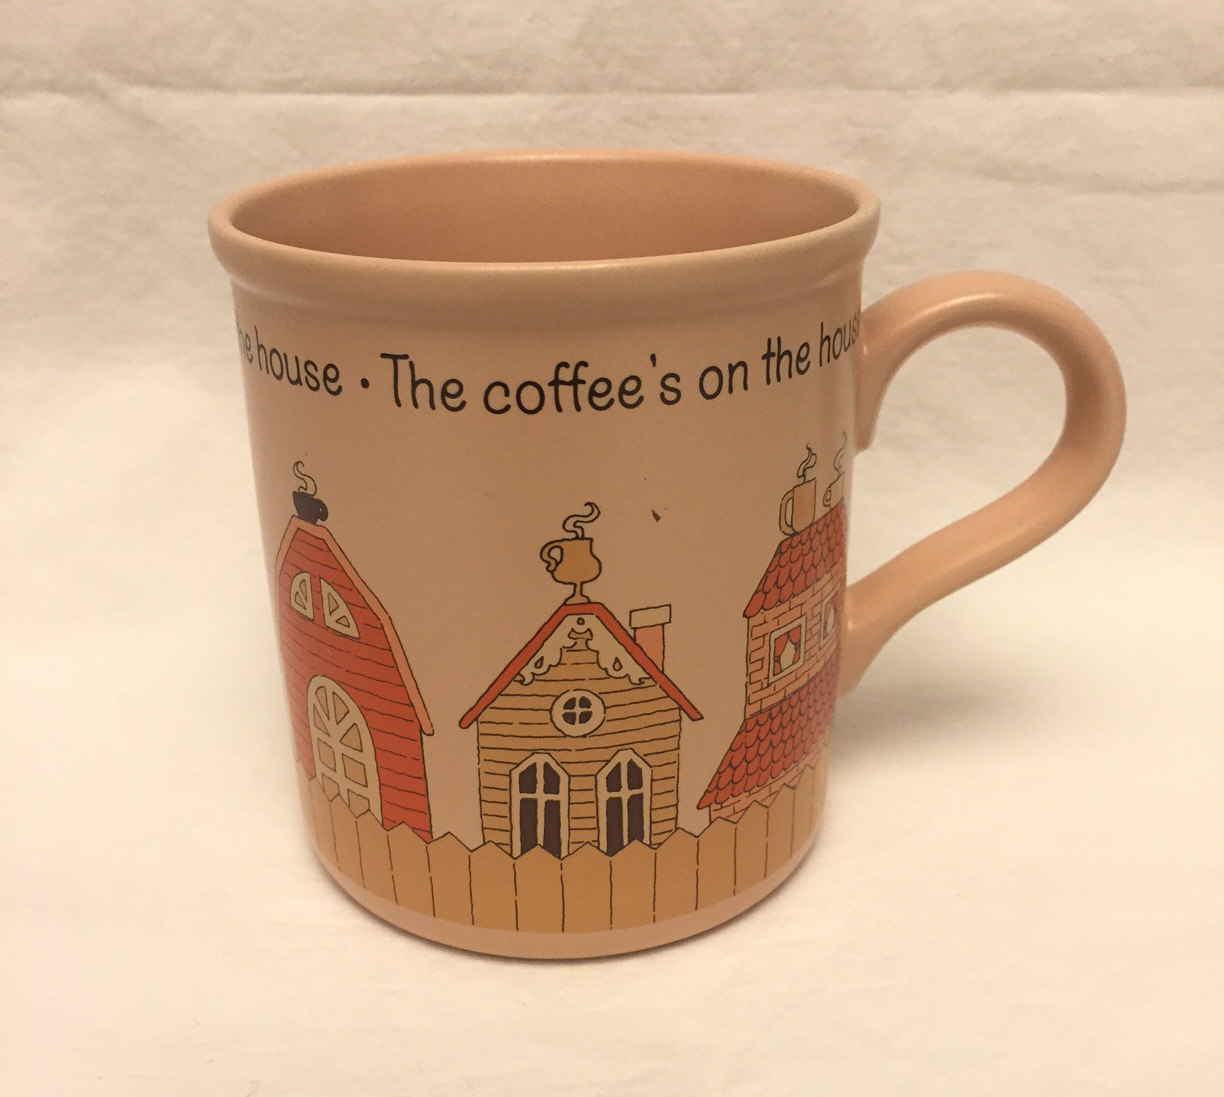 American greetings mug 2 customer reviews and 70 listings vintage 1985 mug coffees on the house american greetings designers collection 300 m4hsunfo